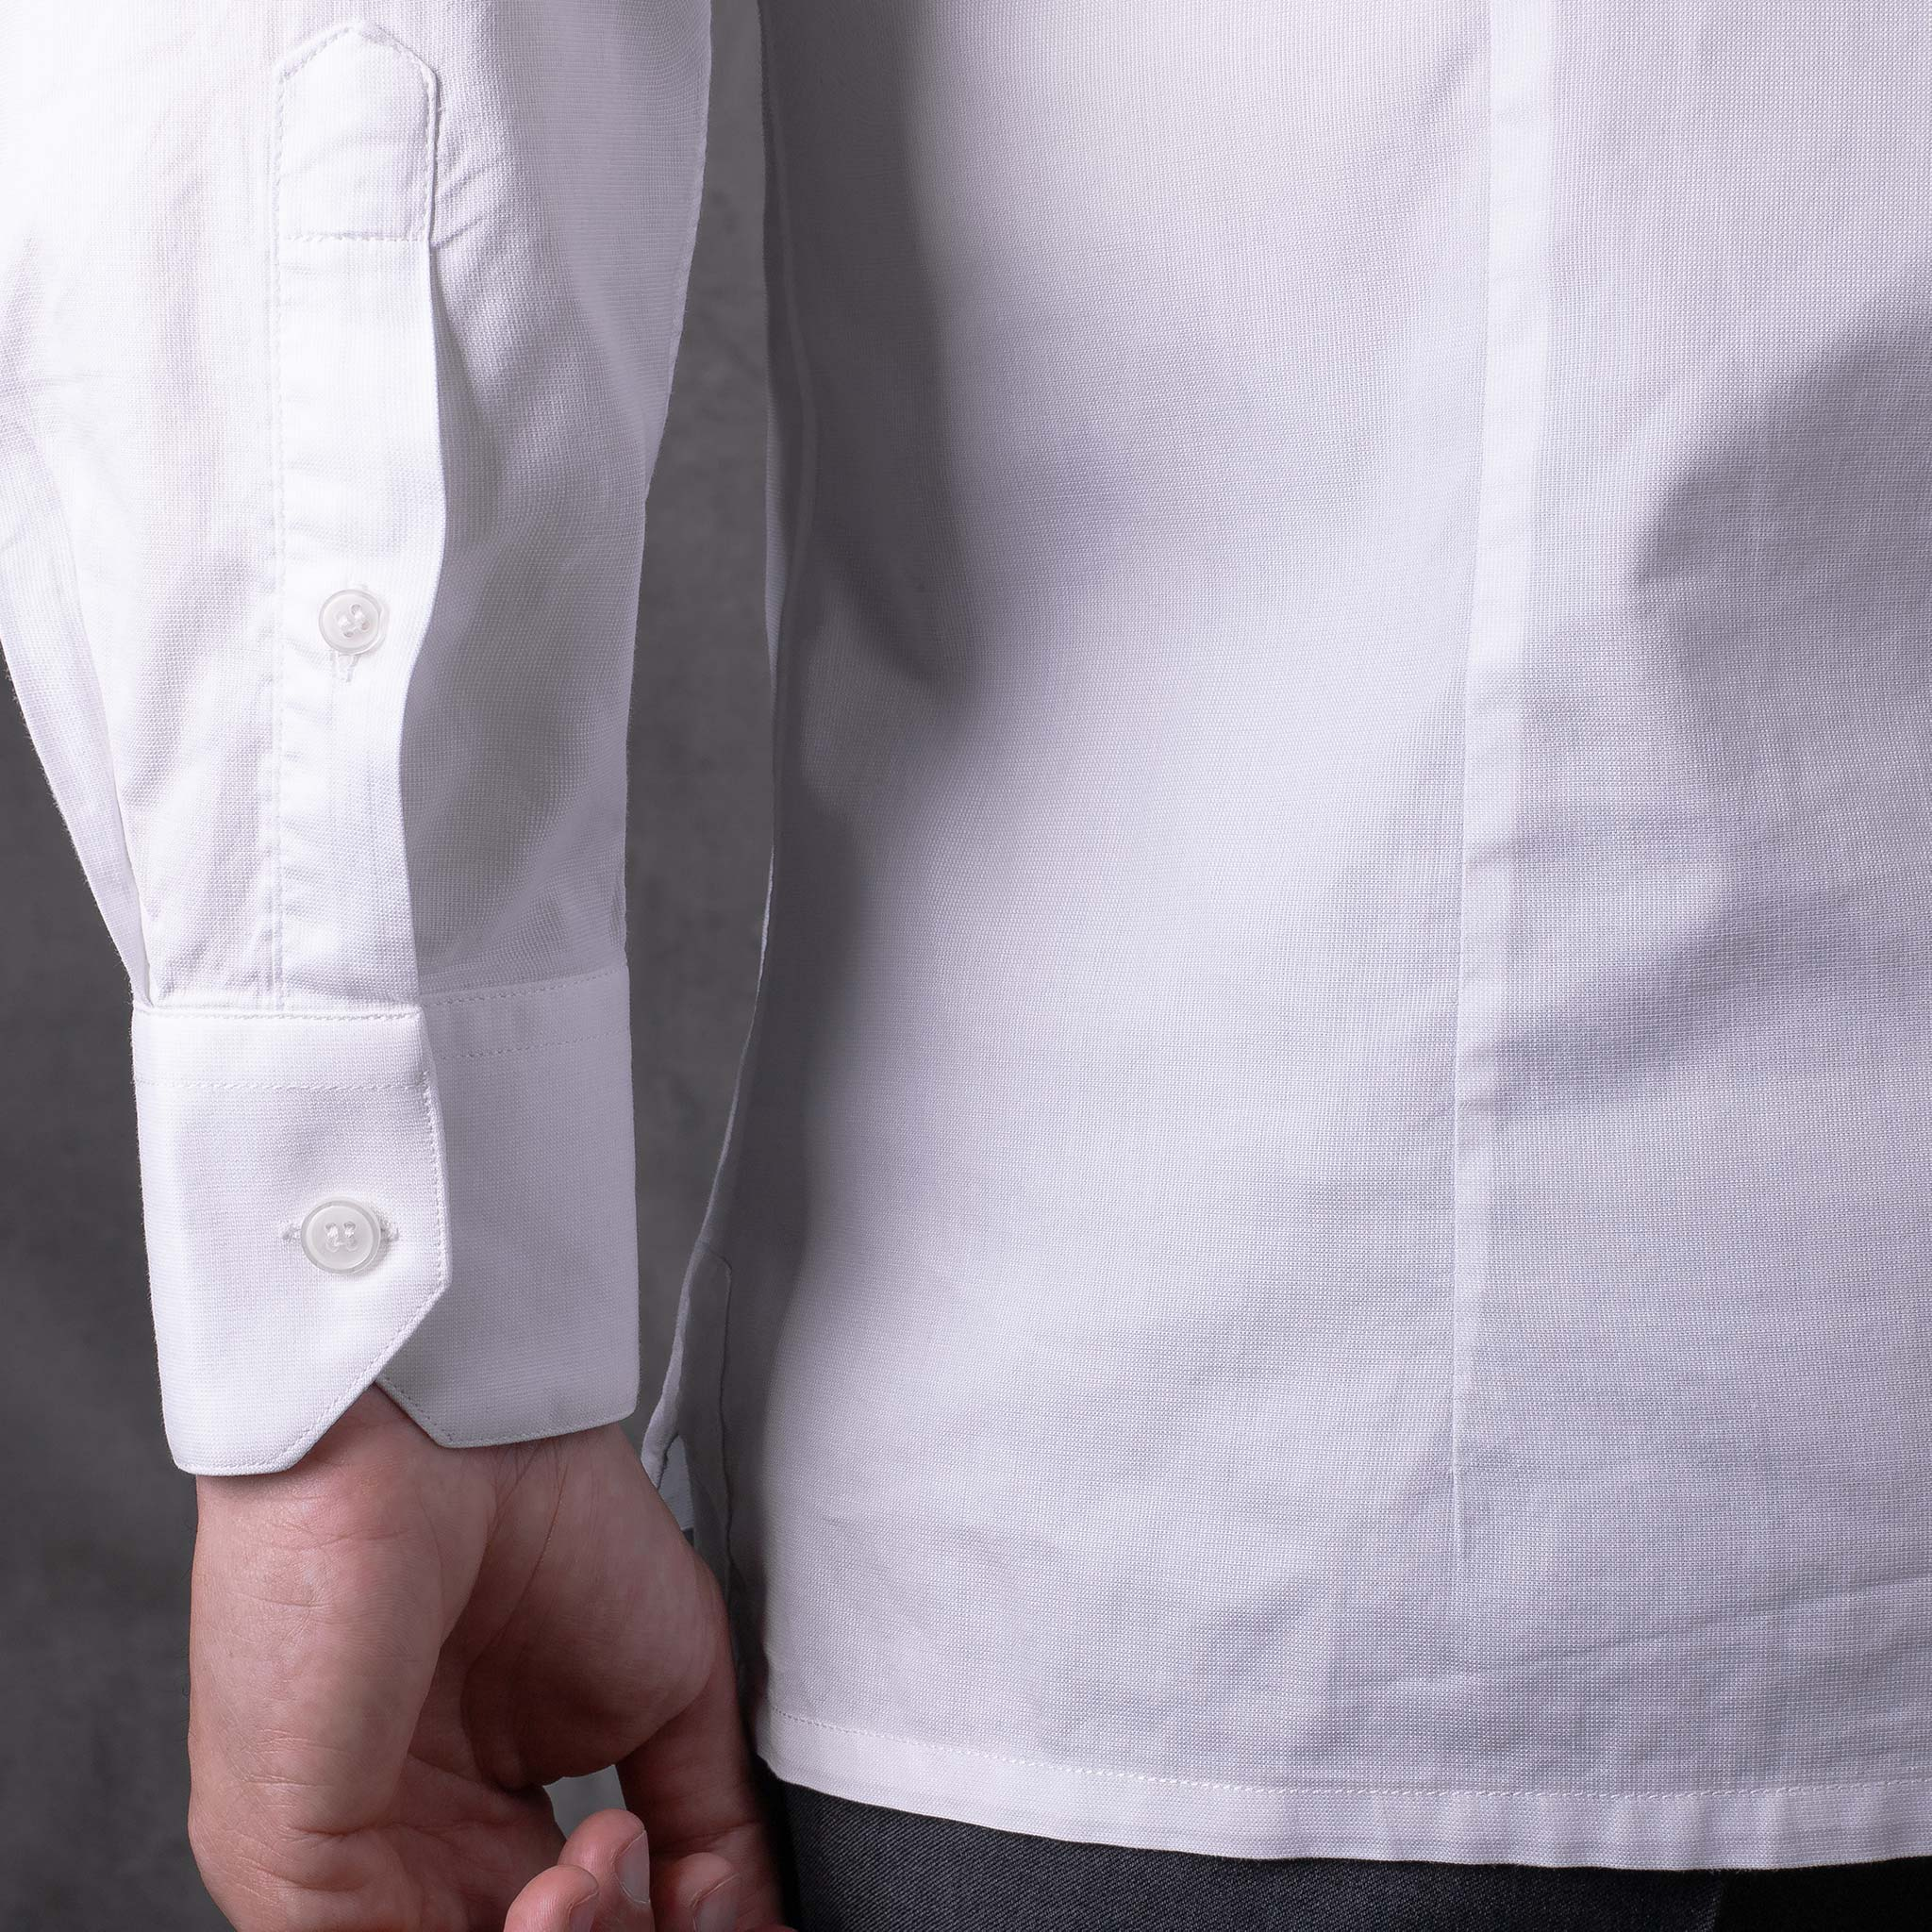 SHIRT 01.01 WHITE CAMISA 01.01 BLANCA The Seëlk 9